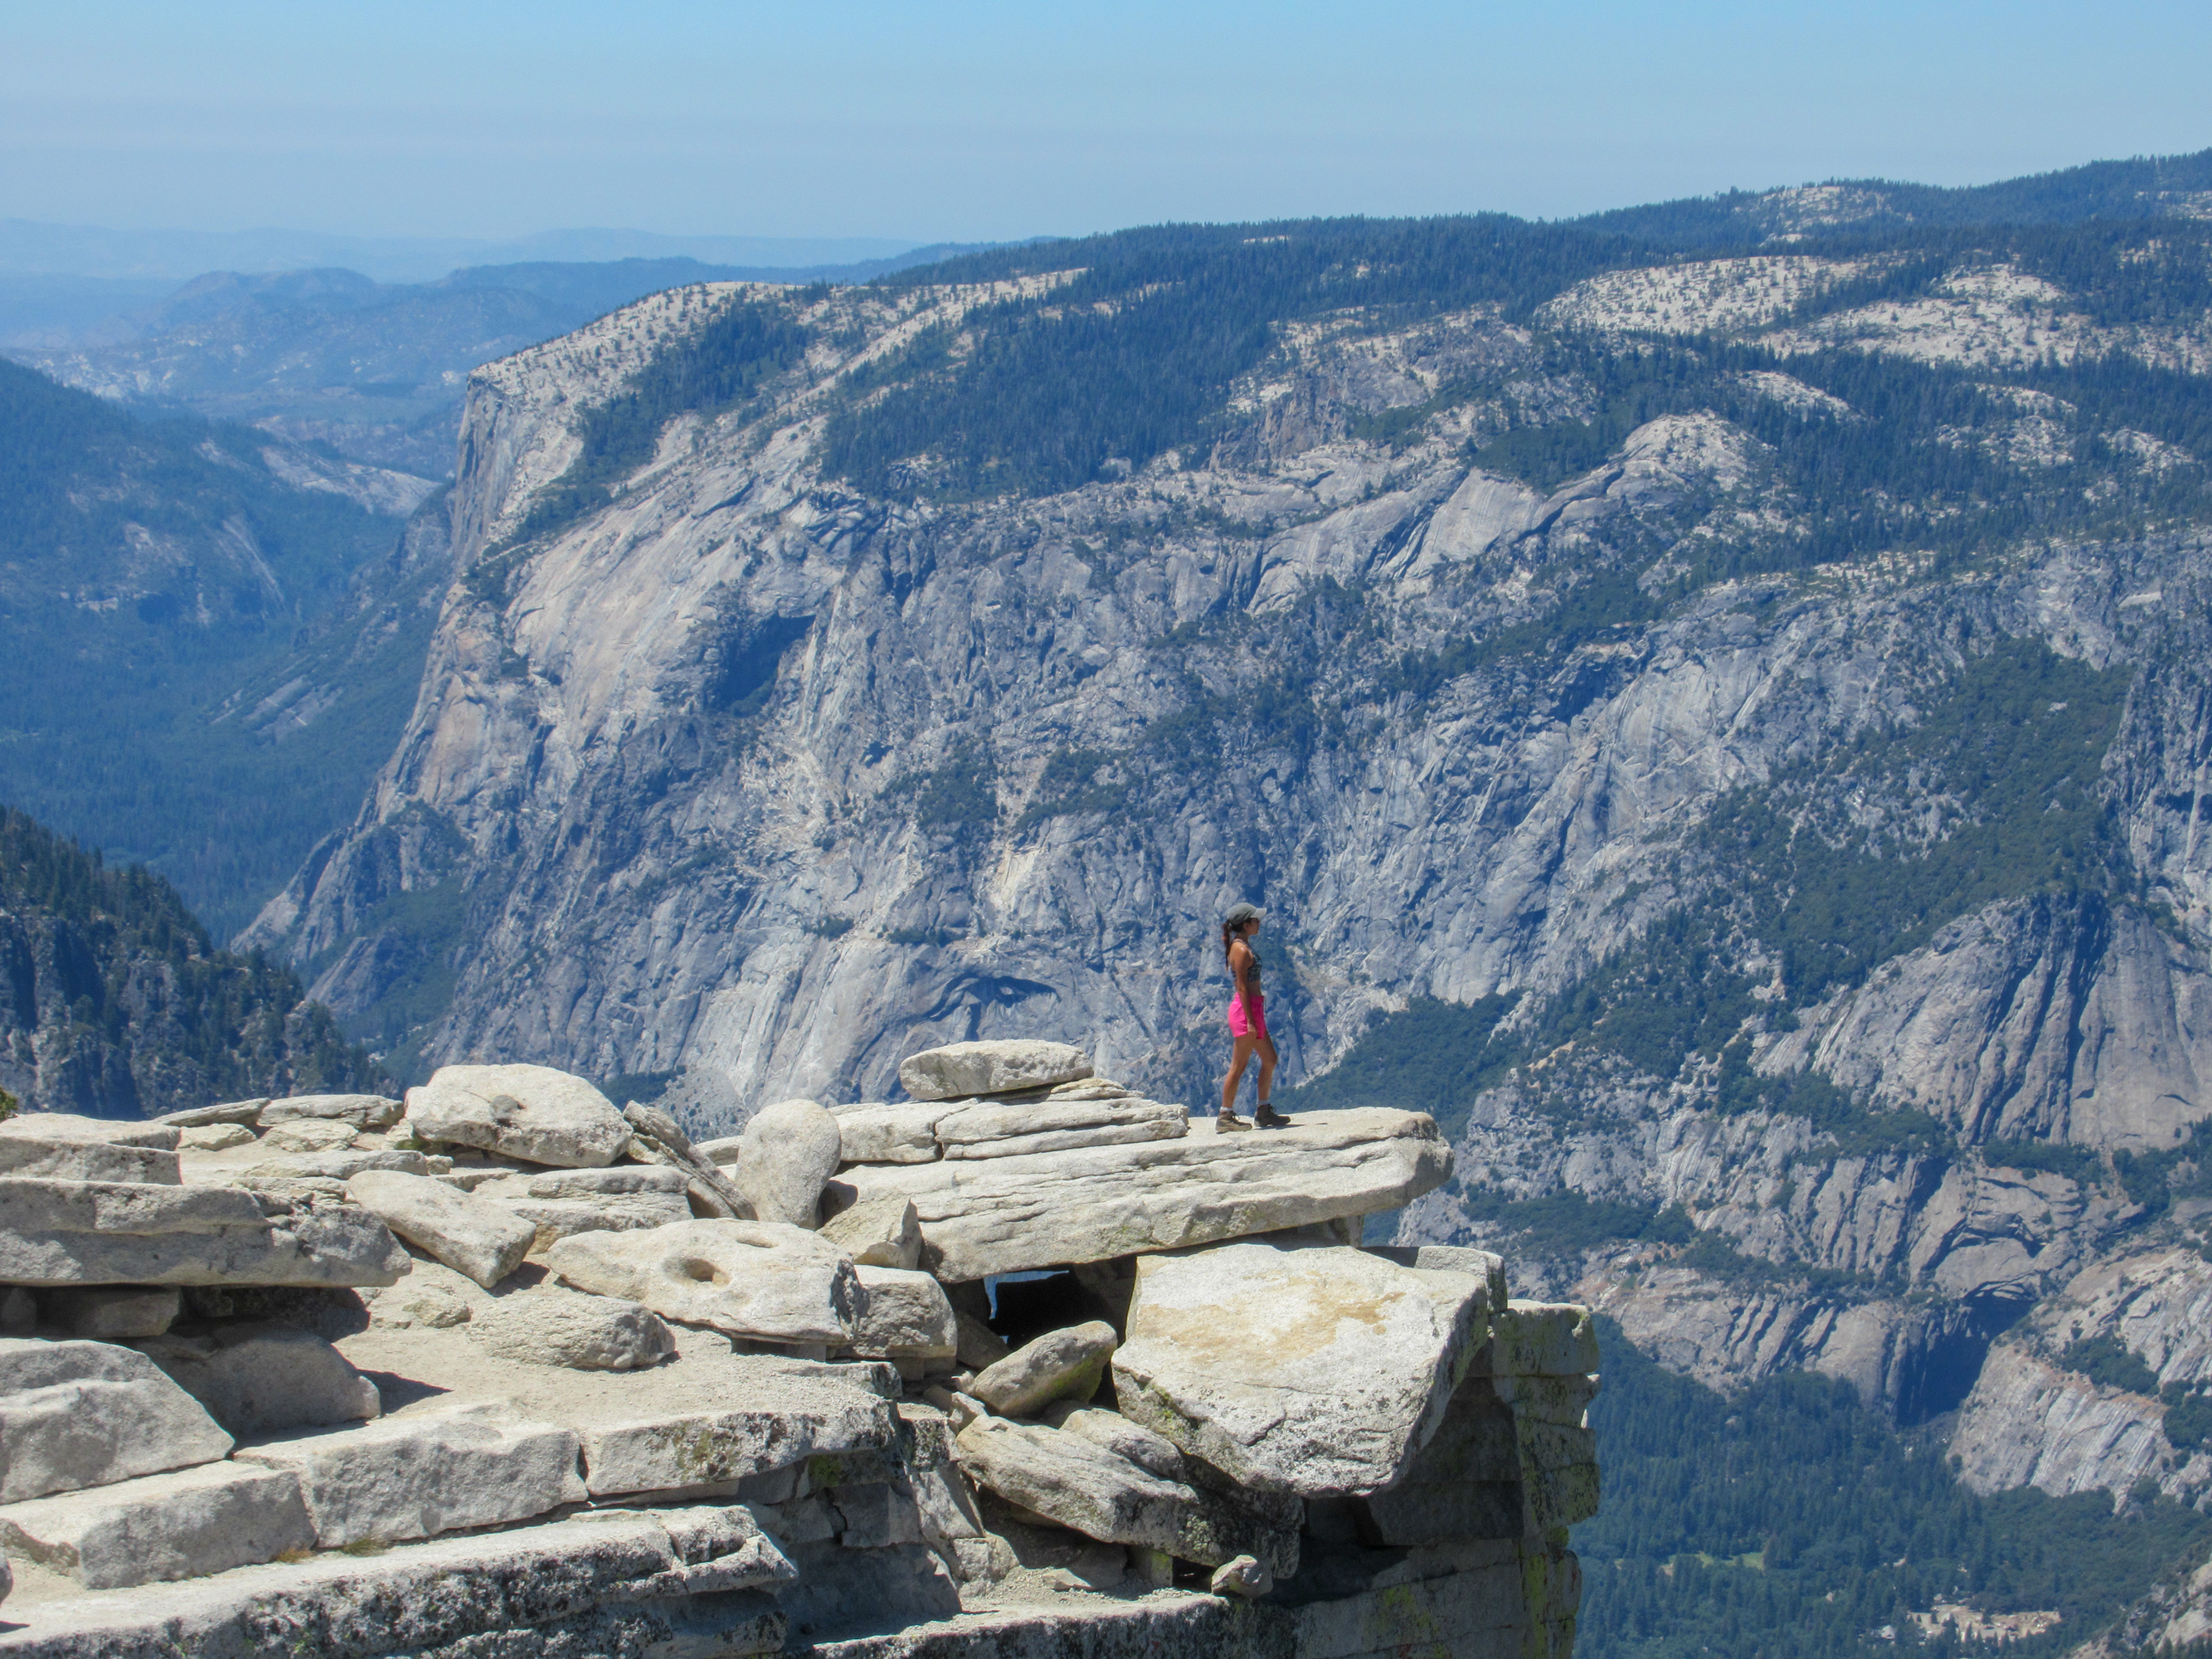 Madison Snively peers over the granite edge of Half Dome into Yosemite Valley.